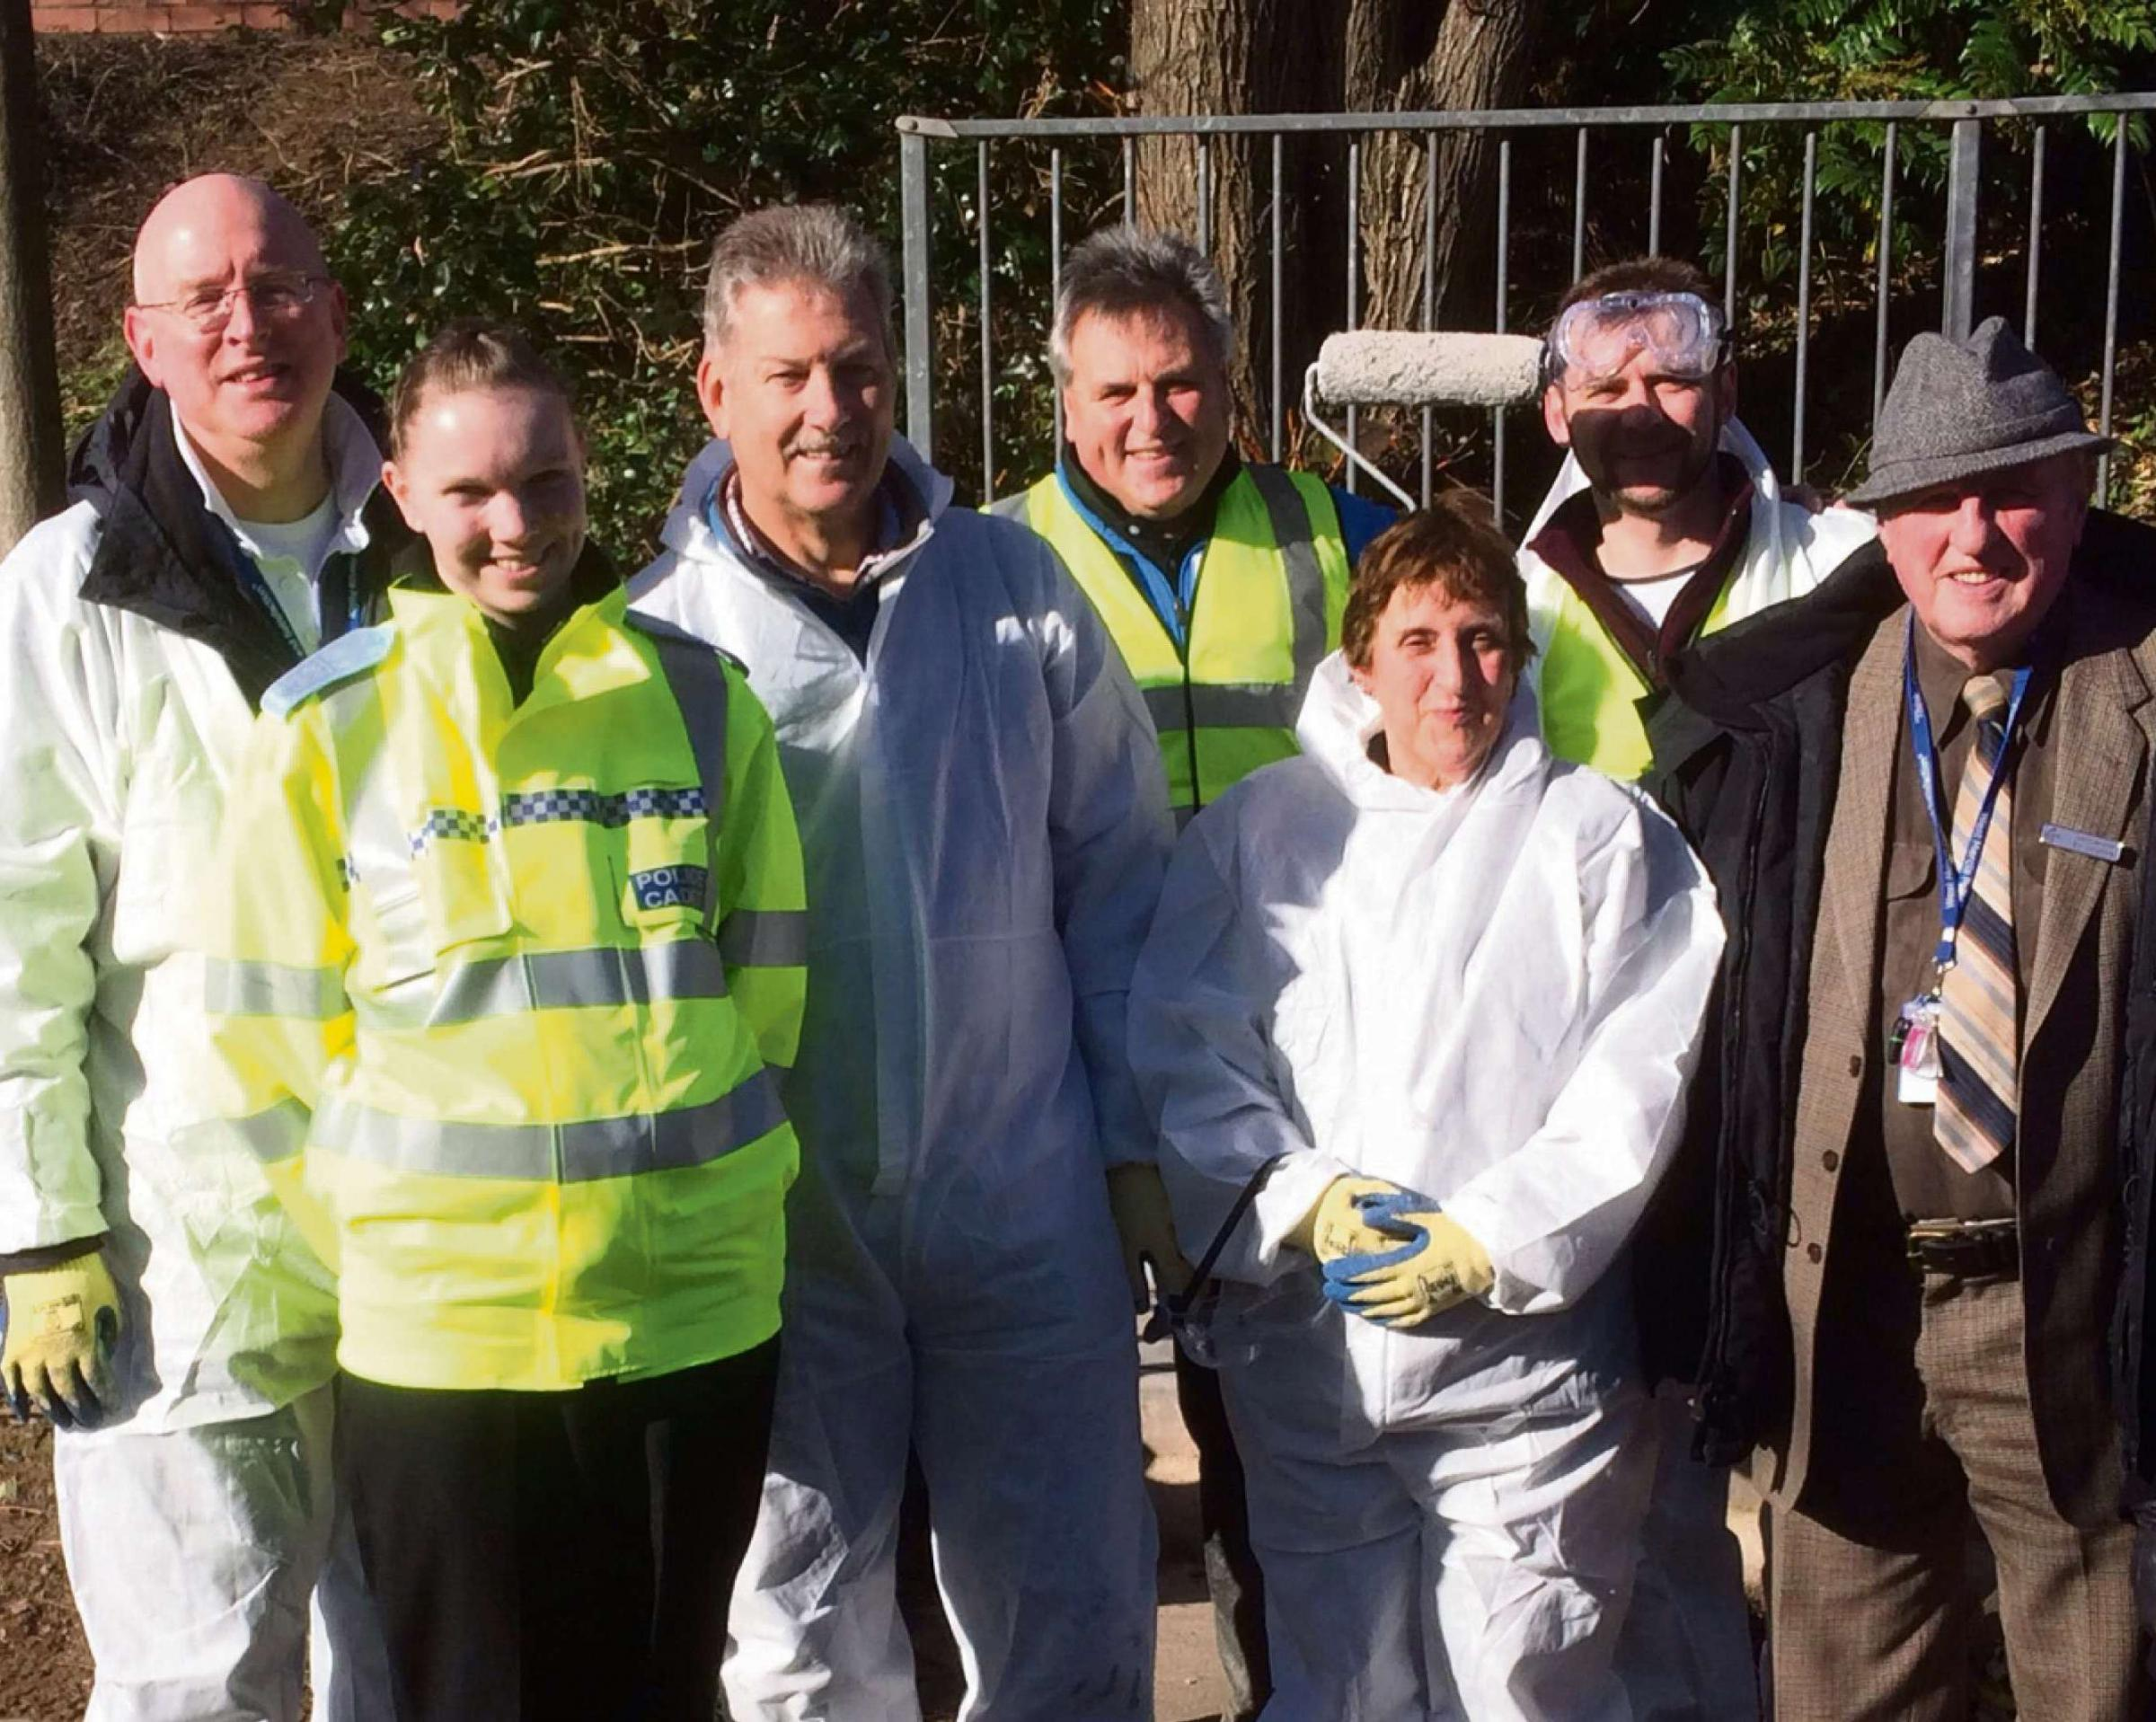 Cleaning up the streets: (l-r) Community ambassador coordinator, Paul Deneen, cadet Lisa King, deputy police and crime commissioner Barrie Sheldon, councillor Nick Nenedich, Gwyneth Gill, community ambassador for Herefordshire, Will Lyndsey, chief executi